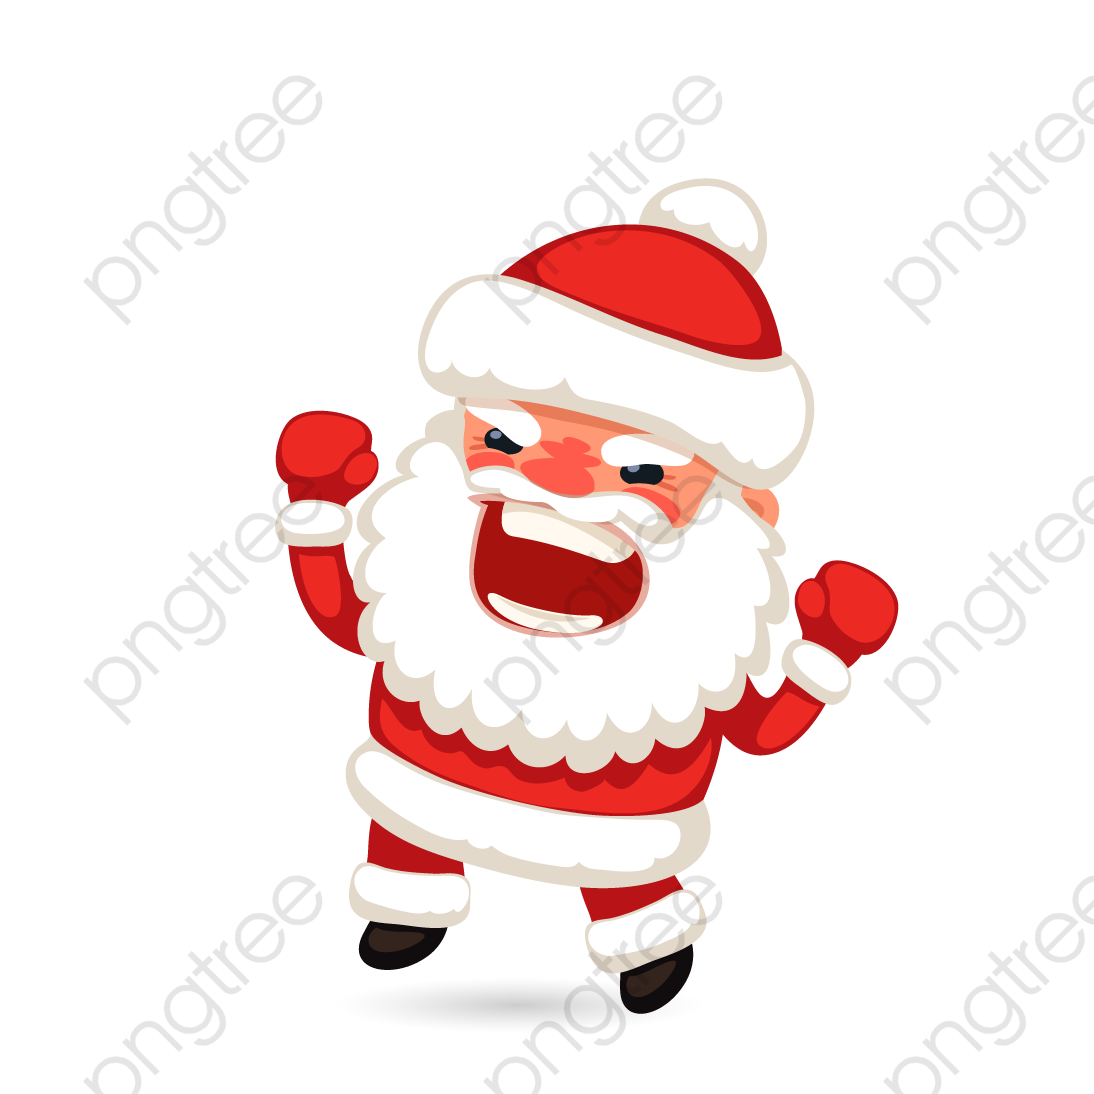 Transparent angry santa claus vector PNG Format Image With Size 1094.